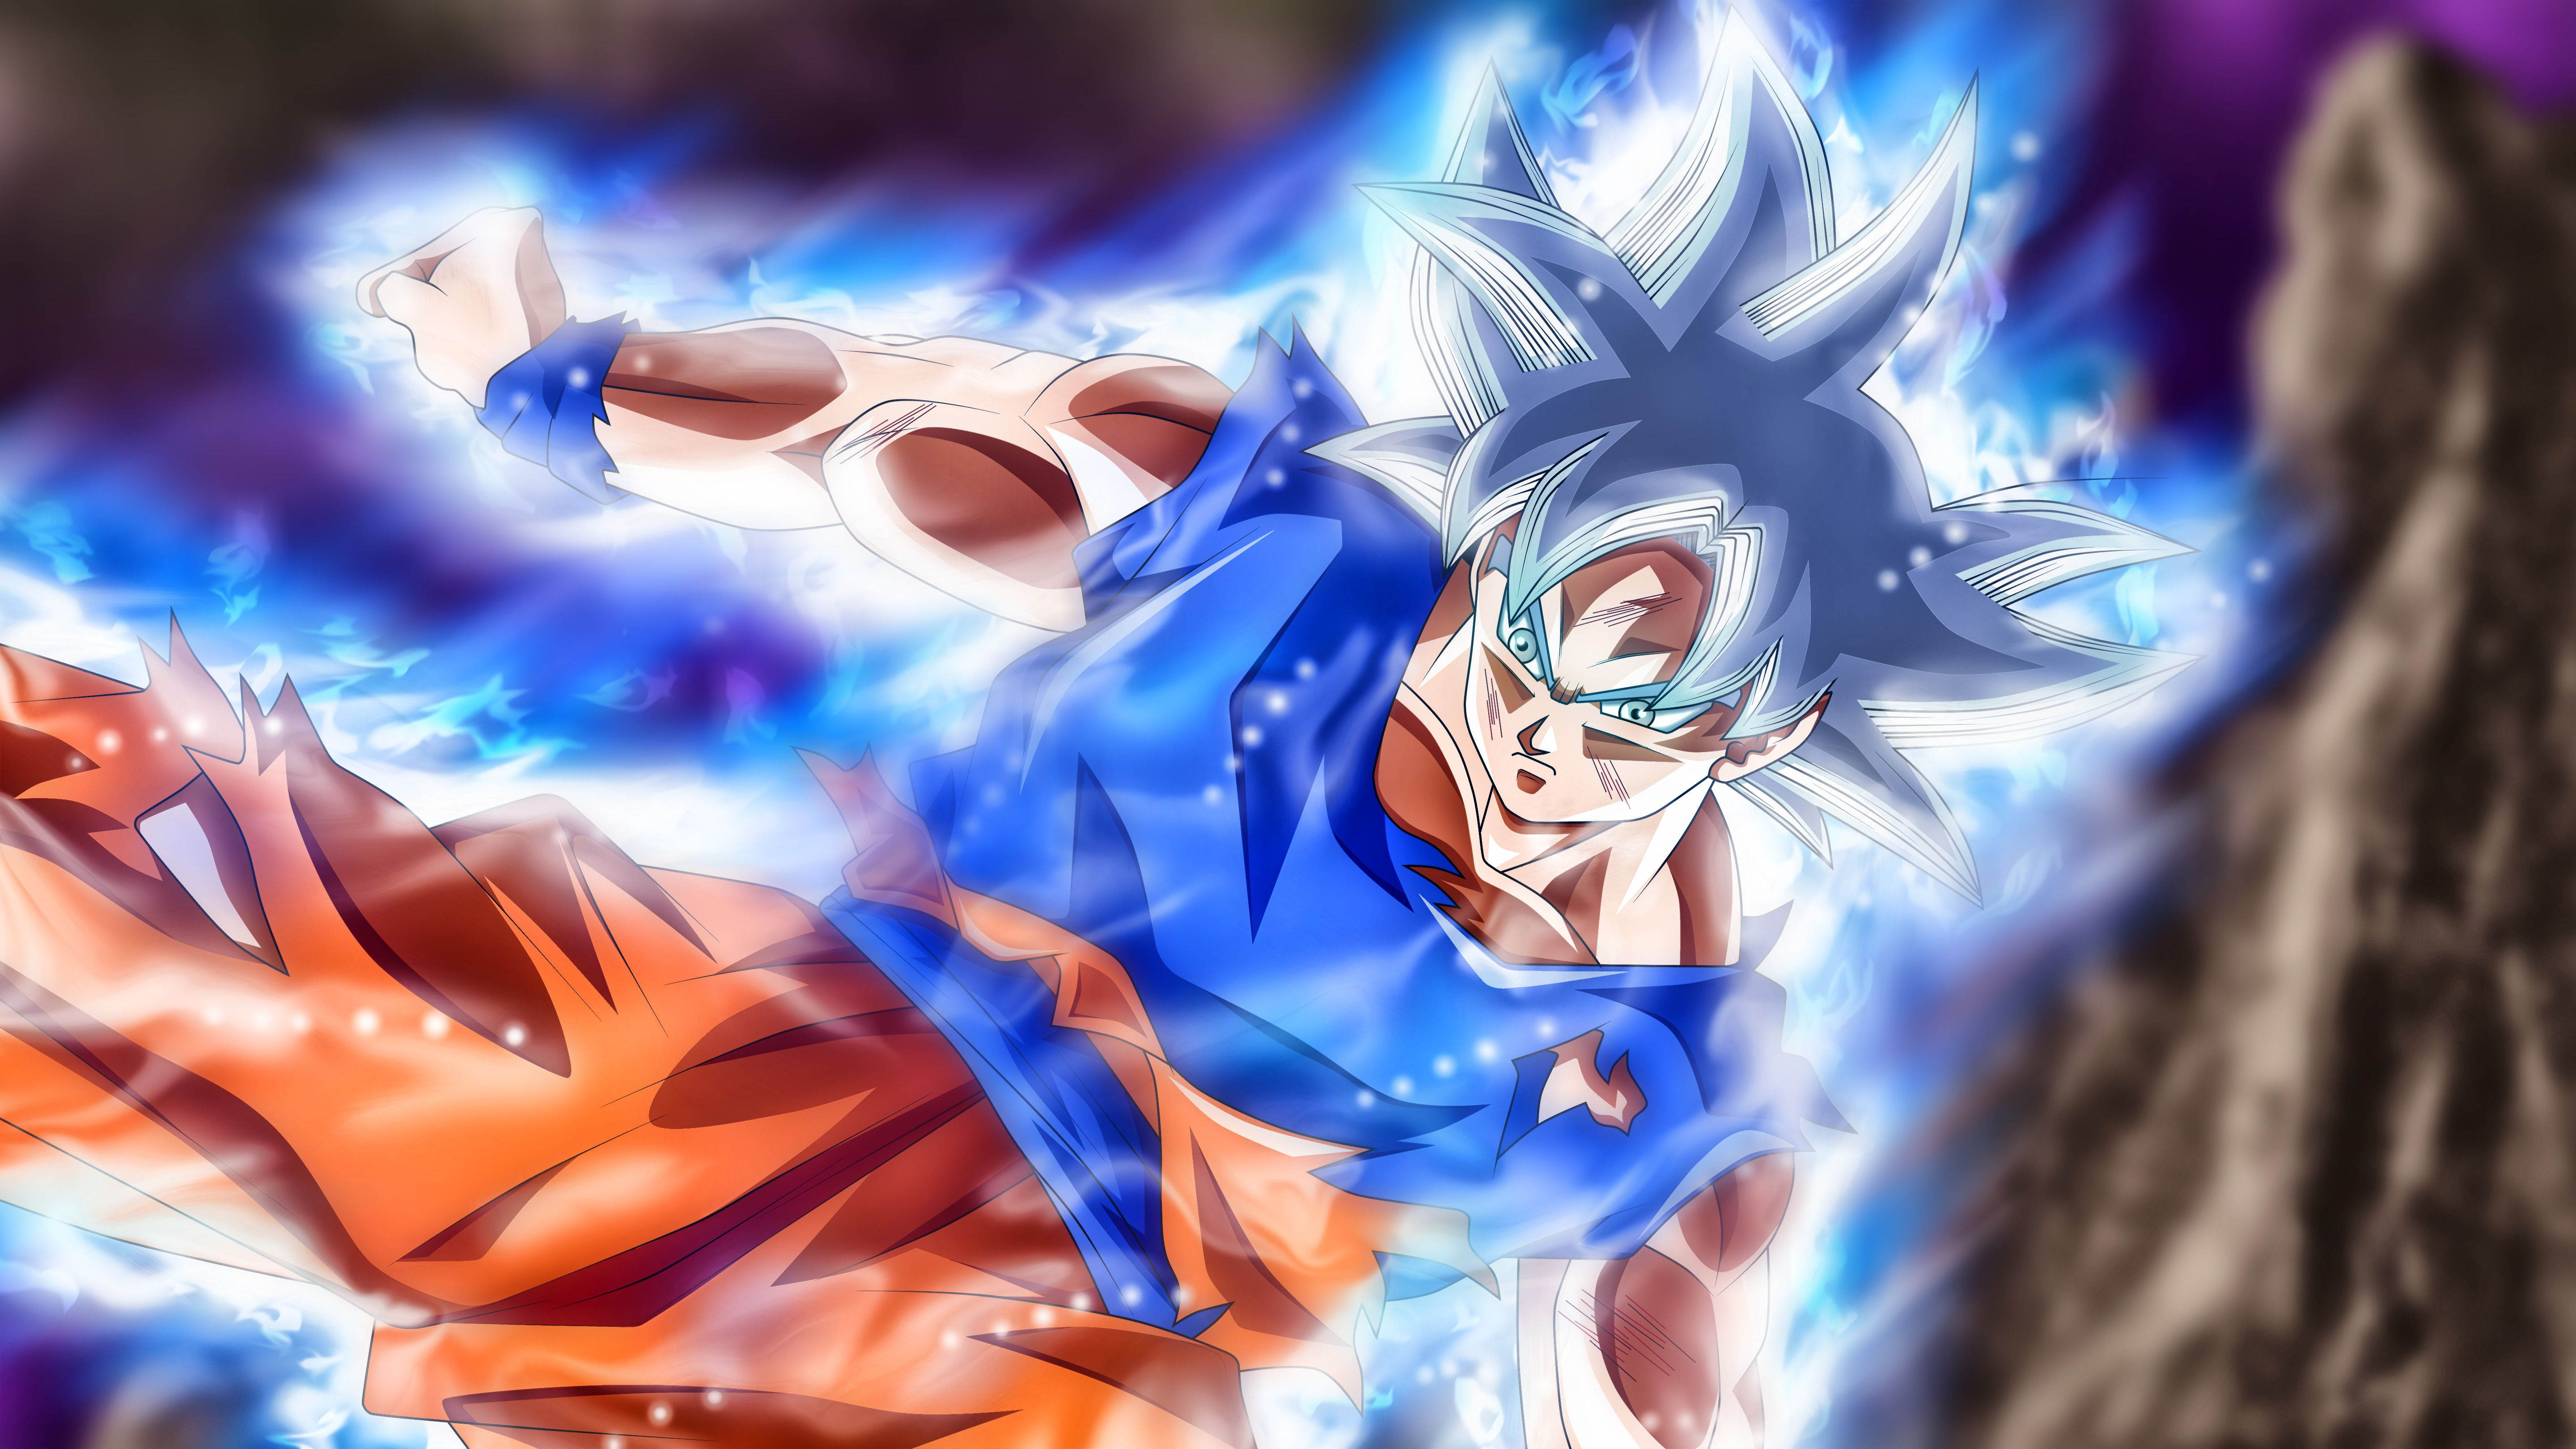 Ultra Instinct Goku Wallpapers Top Free Ultra Instinct Goku